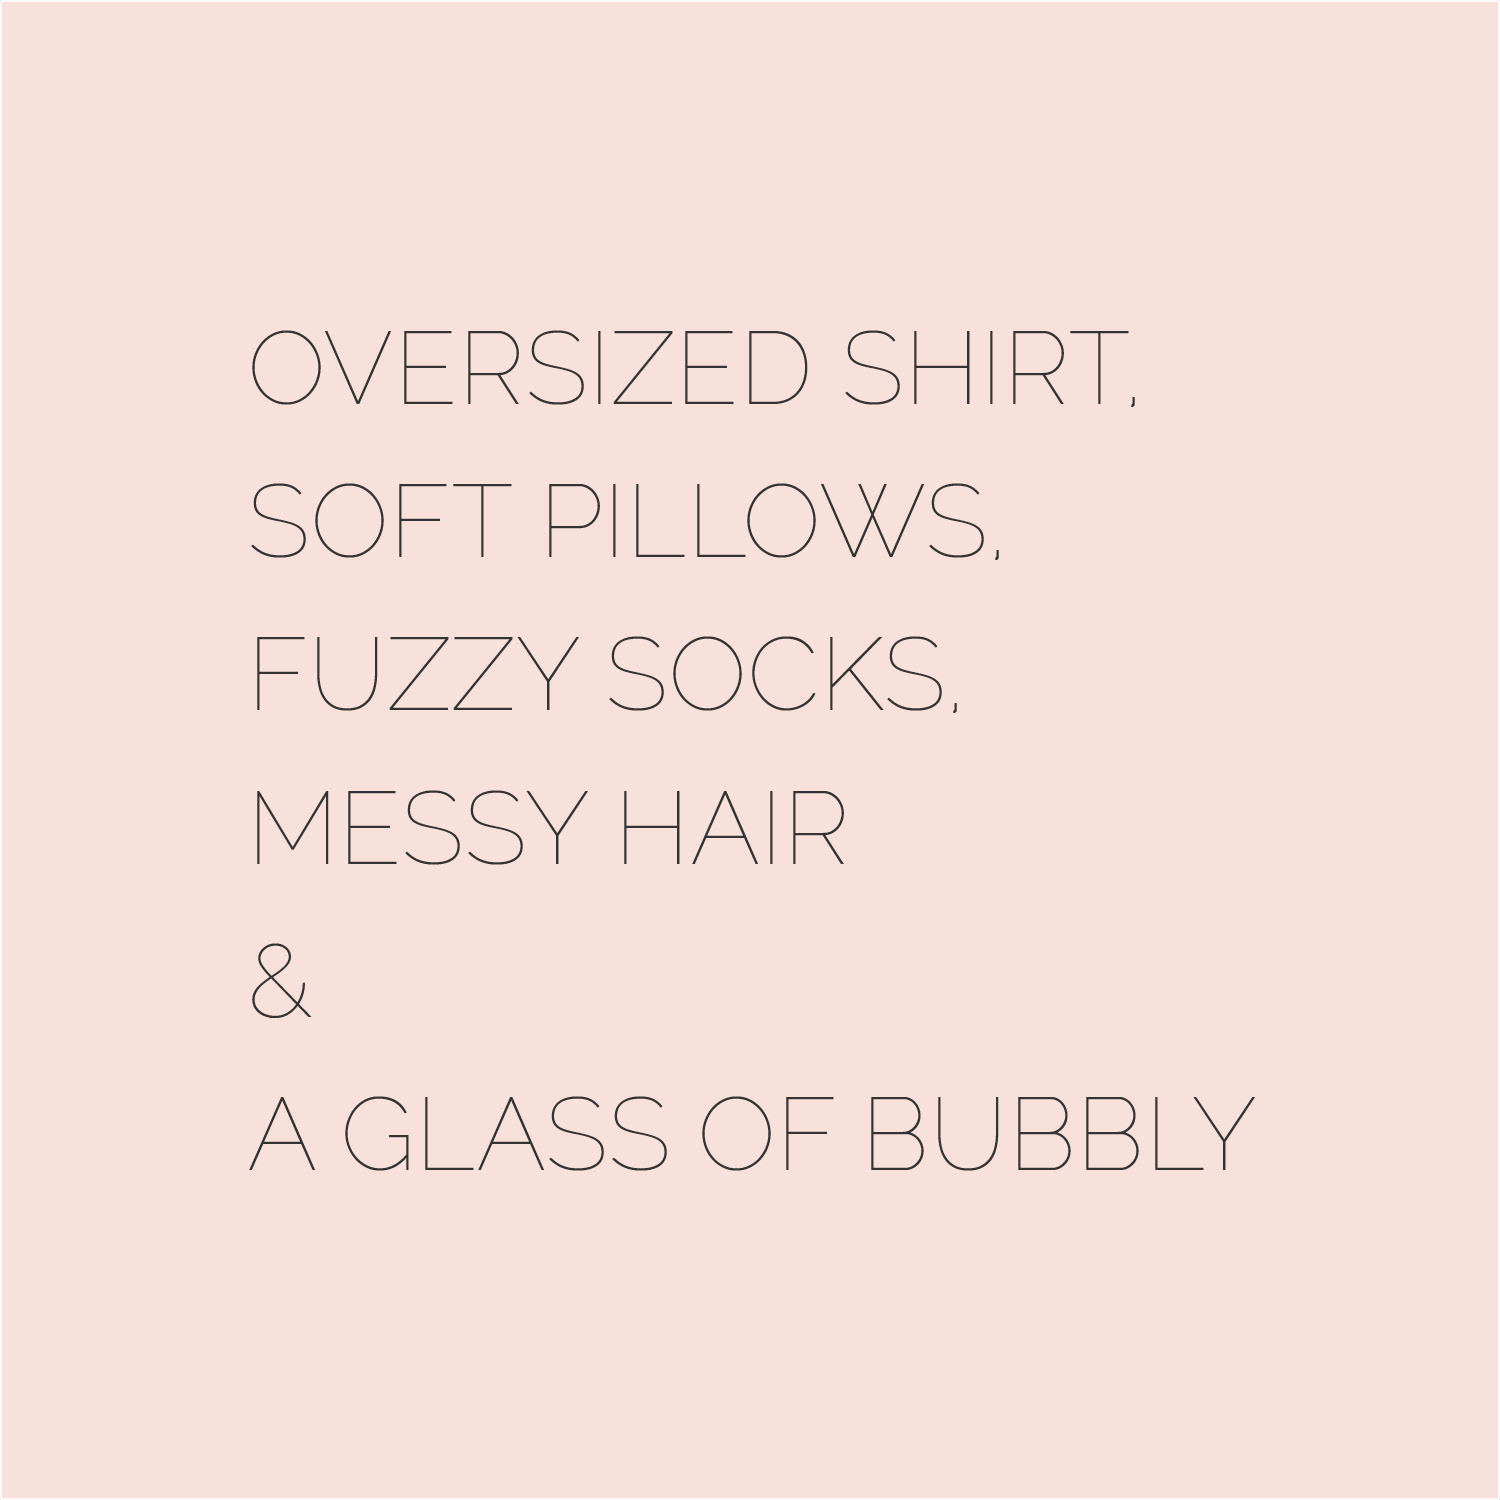 quote champagne cozy sunday morning in bed champagne sparkling wine oversized shirt fuzzy socks messy hair and a glass of bubbly